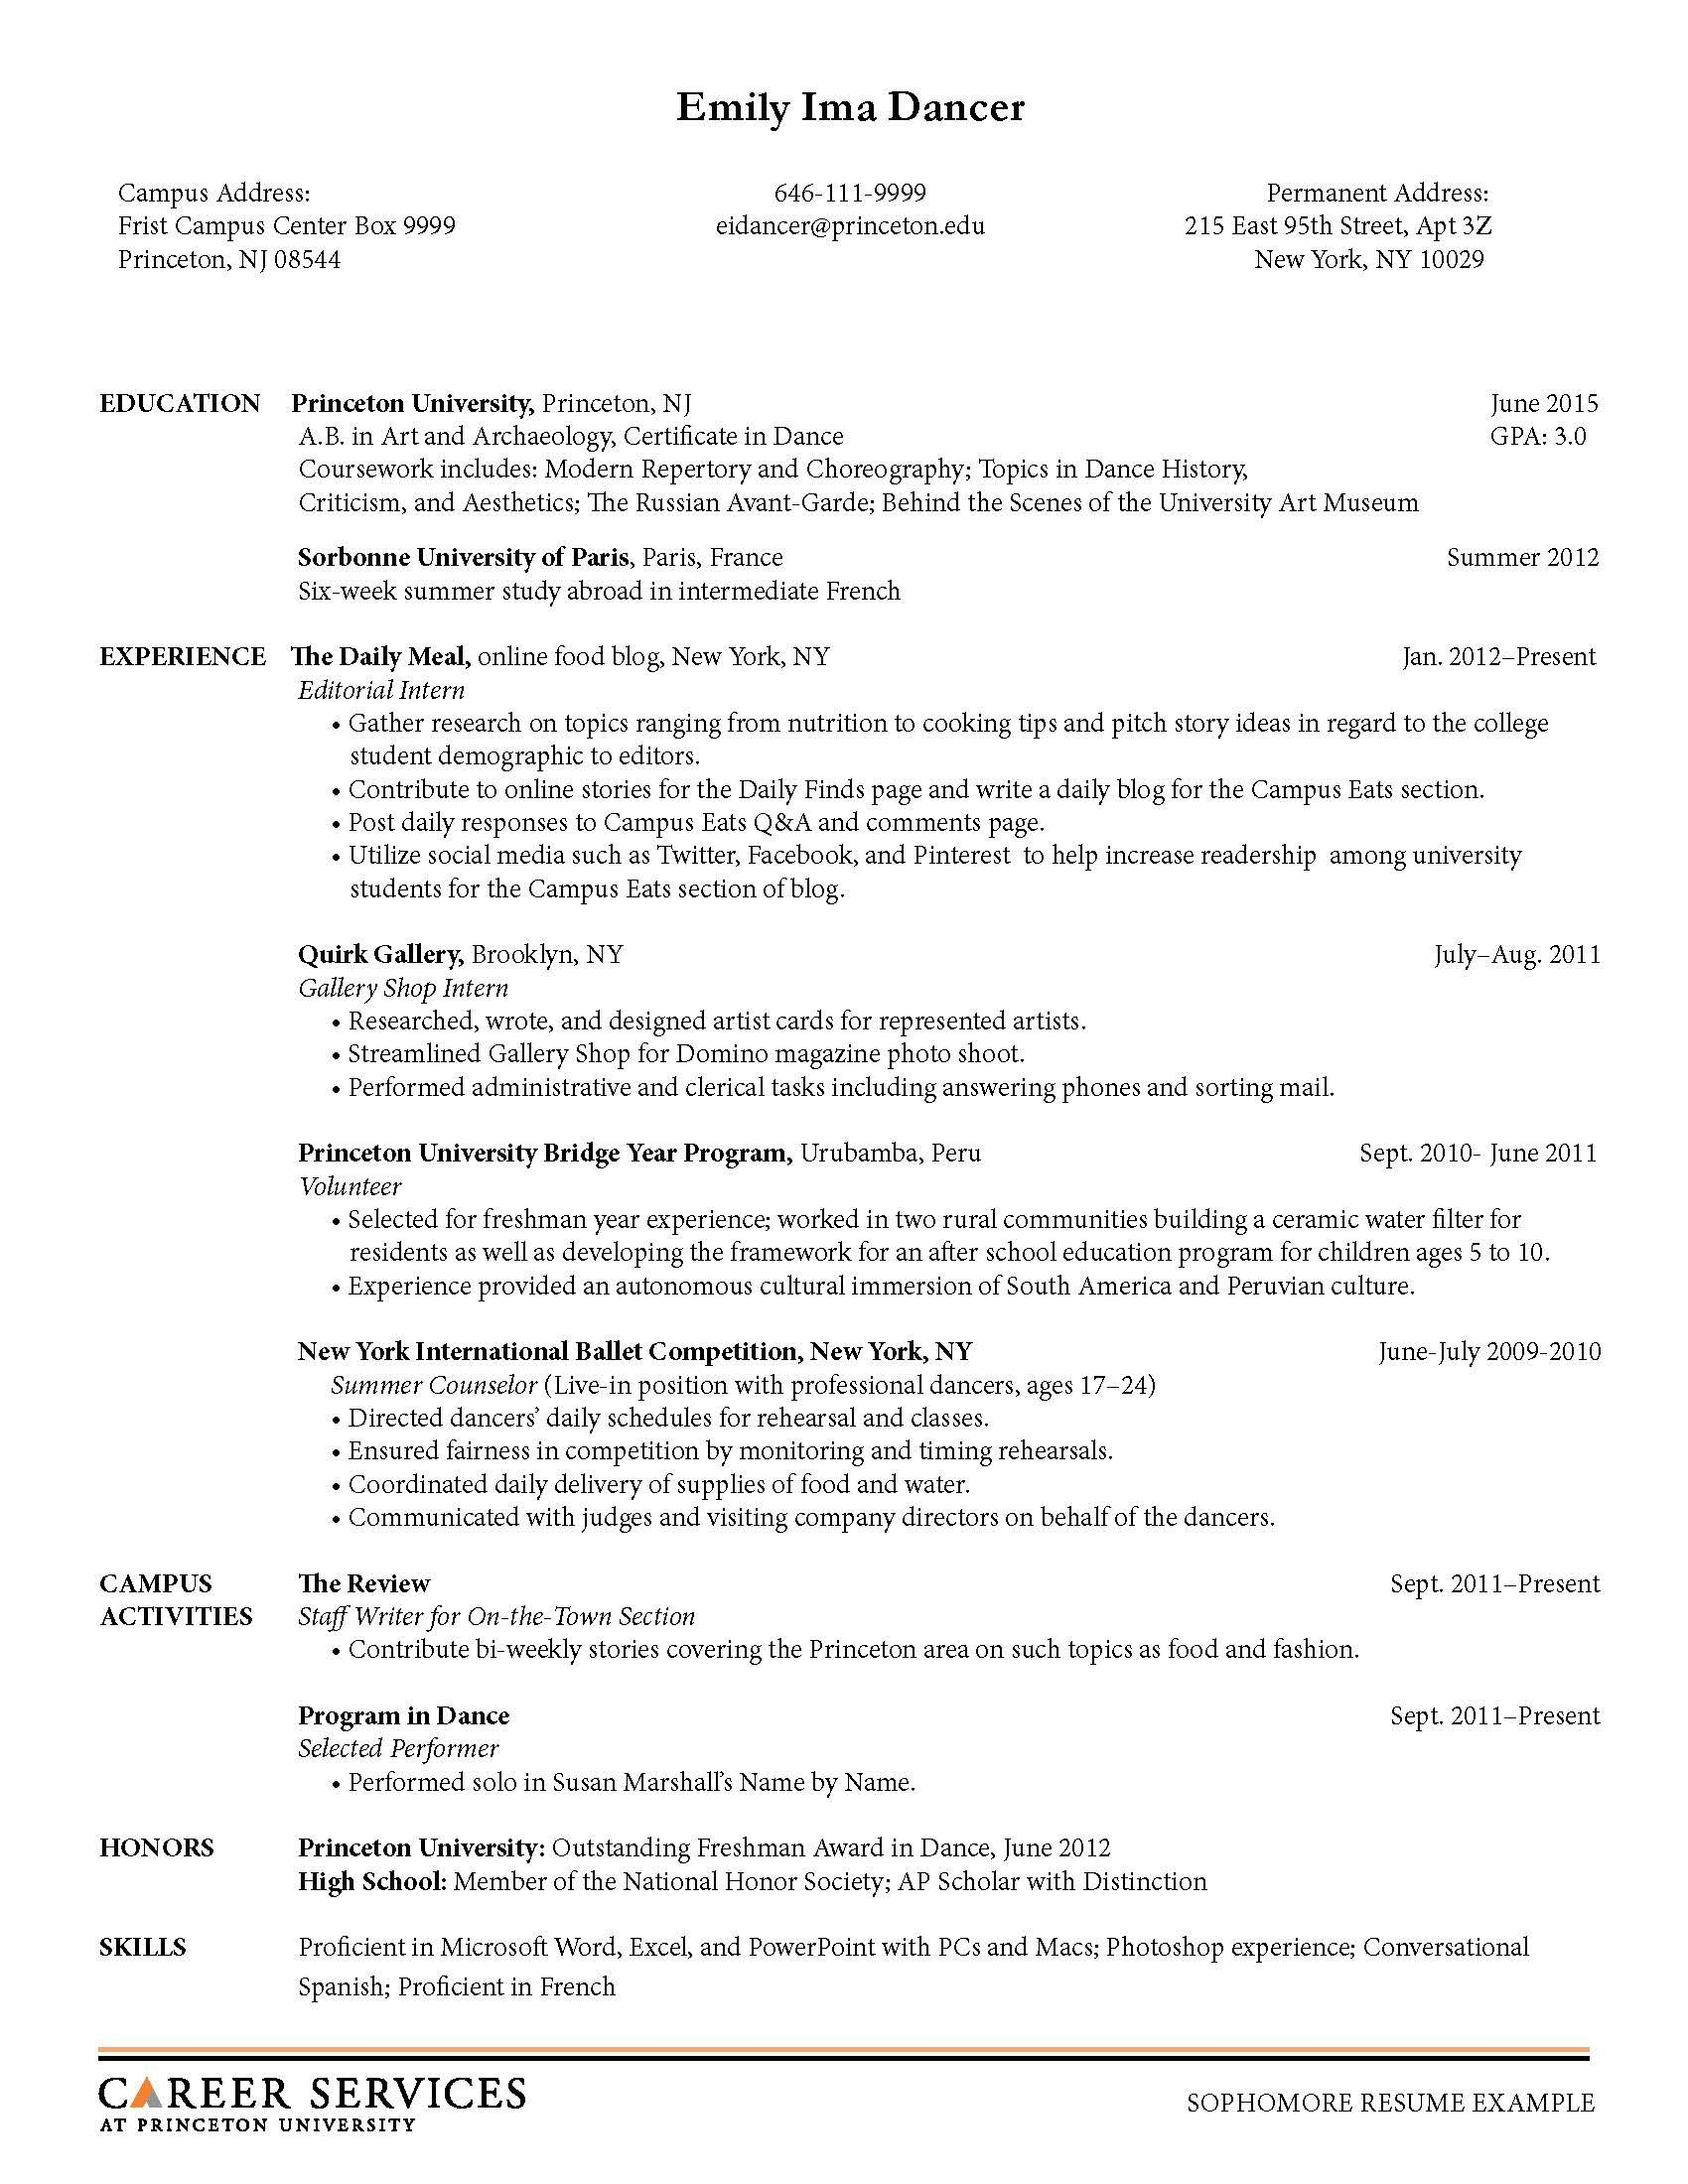 Opposenewapstandardsus  Winsome Sample Resume Resume And Career On Pinterest With Fetching Sample Legal Assistant Resume Besides Copy Paste Resume Furthermore Customer Service Call Center Resume Sample With Divine How To Create A Resume On Microsoft Word Also Resume Express In Addition Accounting Clerk Resume Sample And Nursing Assistant Resume Example As Well As Hr Manager Resumes Additionally Writing A Functional Resume From Pinterestcom With Opposenewapstandardsus  Fetching Sample Resume Resume And Career On Pinterest With Divine Sample Legal Assistant Resume Besides Copy Paste Resume Furthermore Customer Service Call Center Resume Sample And Winsome How To Create A Resume On Microsoft Word Also Resume Express In Addition Accounting Clerk Resume Sample From Pinterestcom